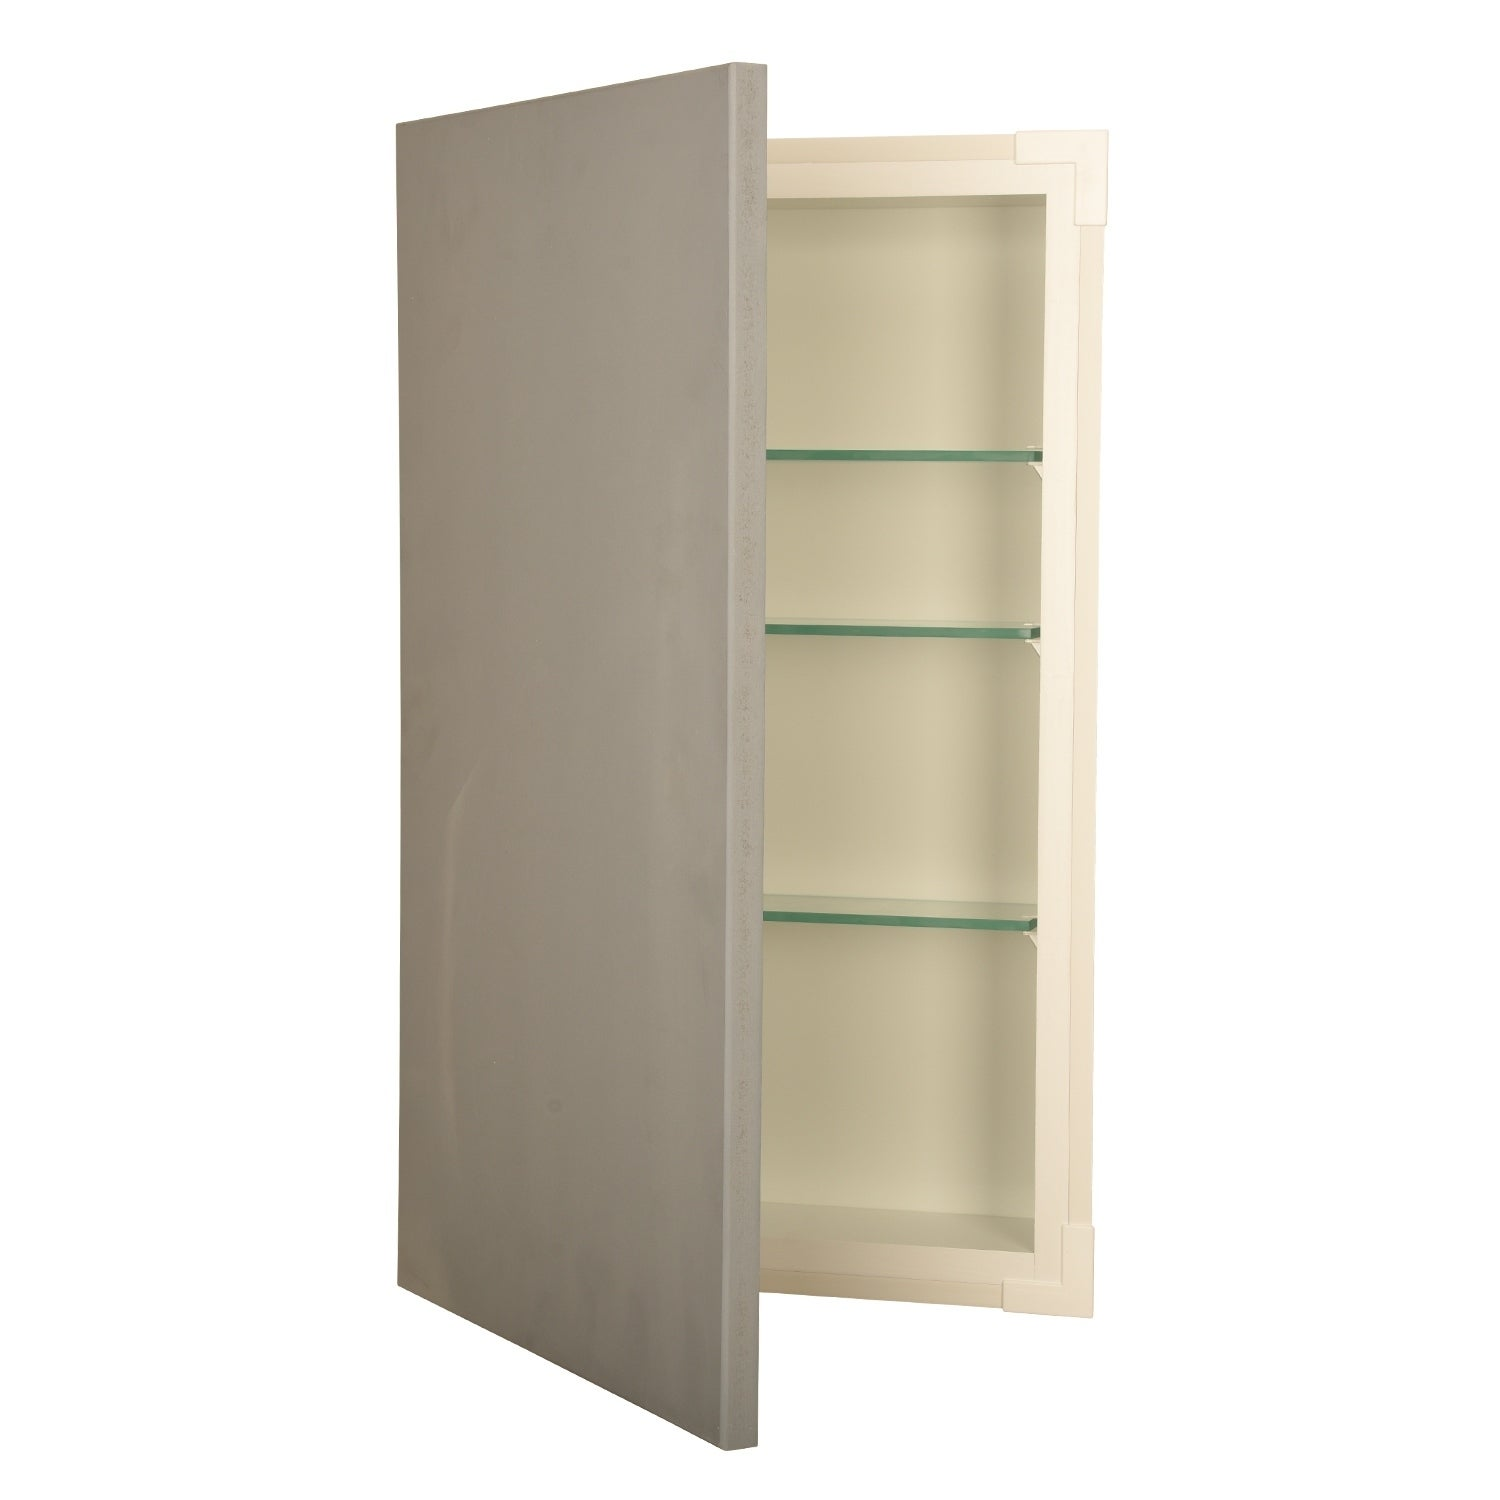 20 Inch Recessed Wall Cabinet 3 5 Deep Free Shipping Today 12604572